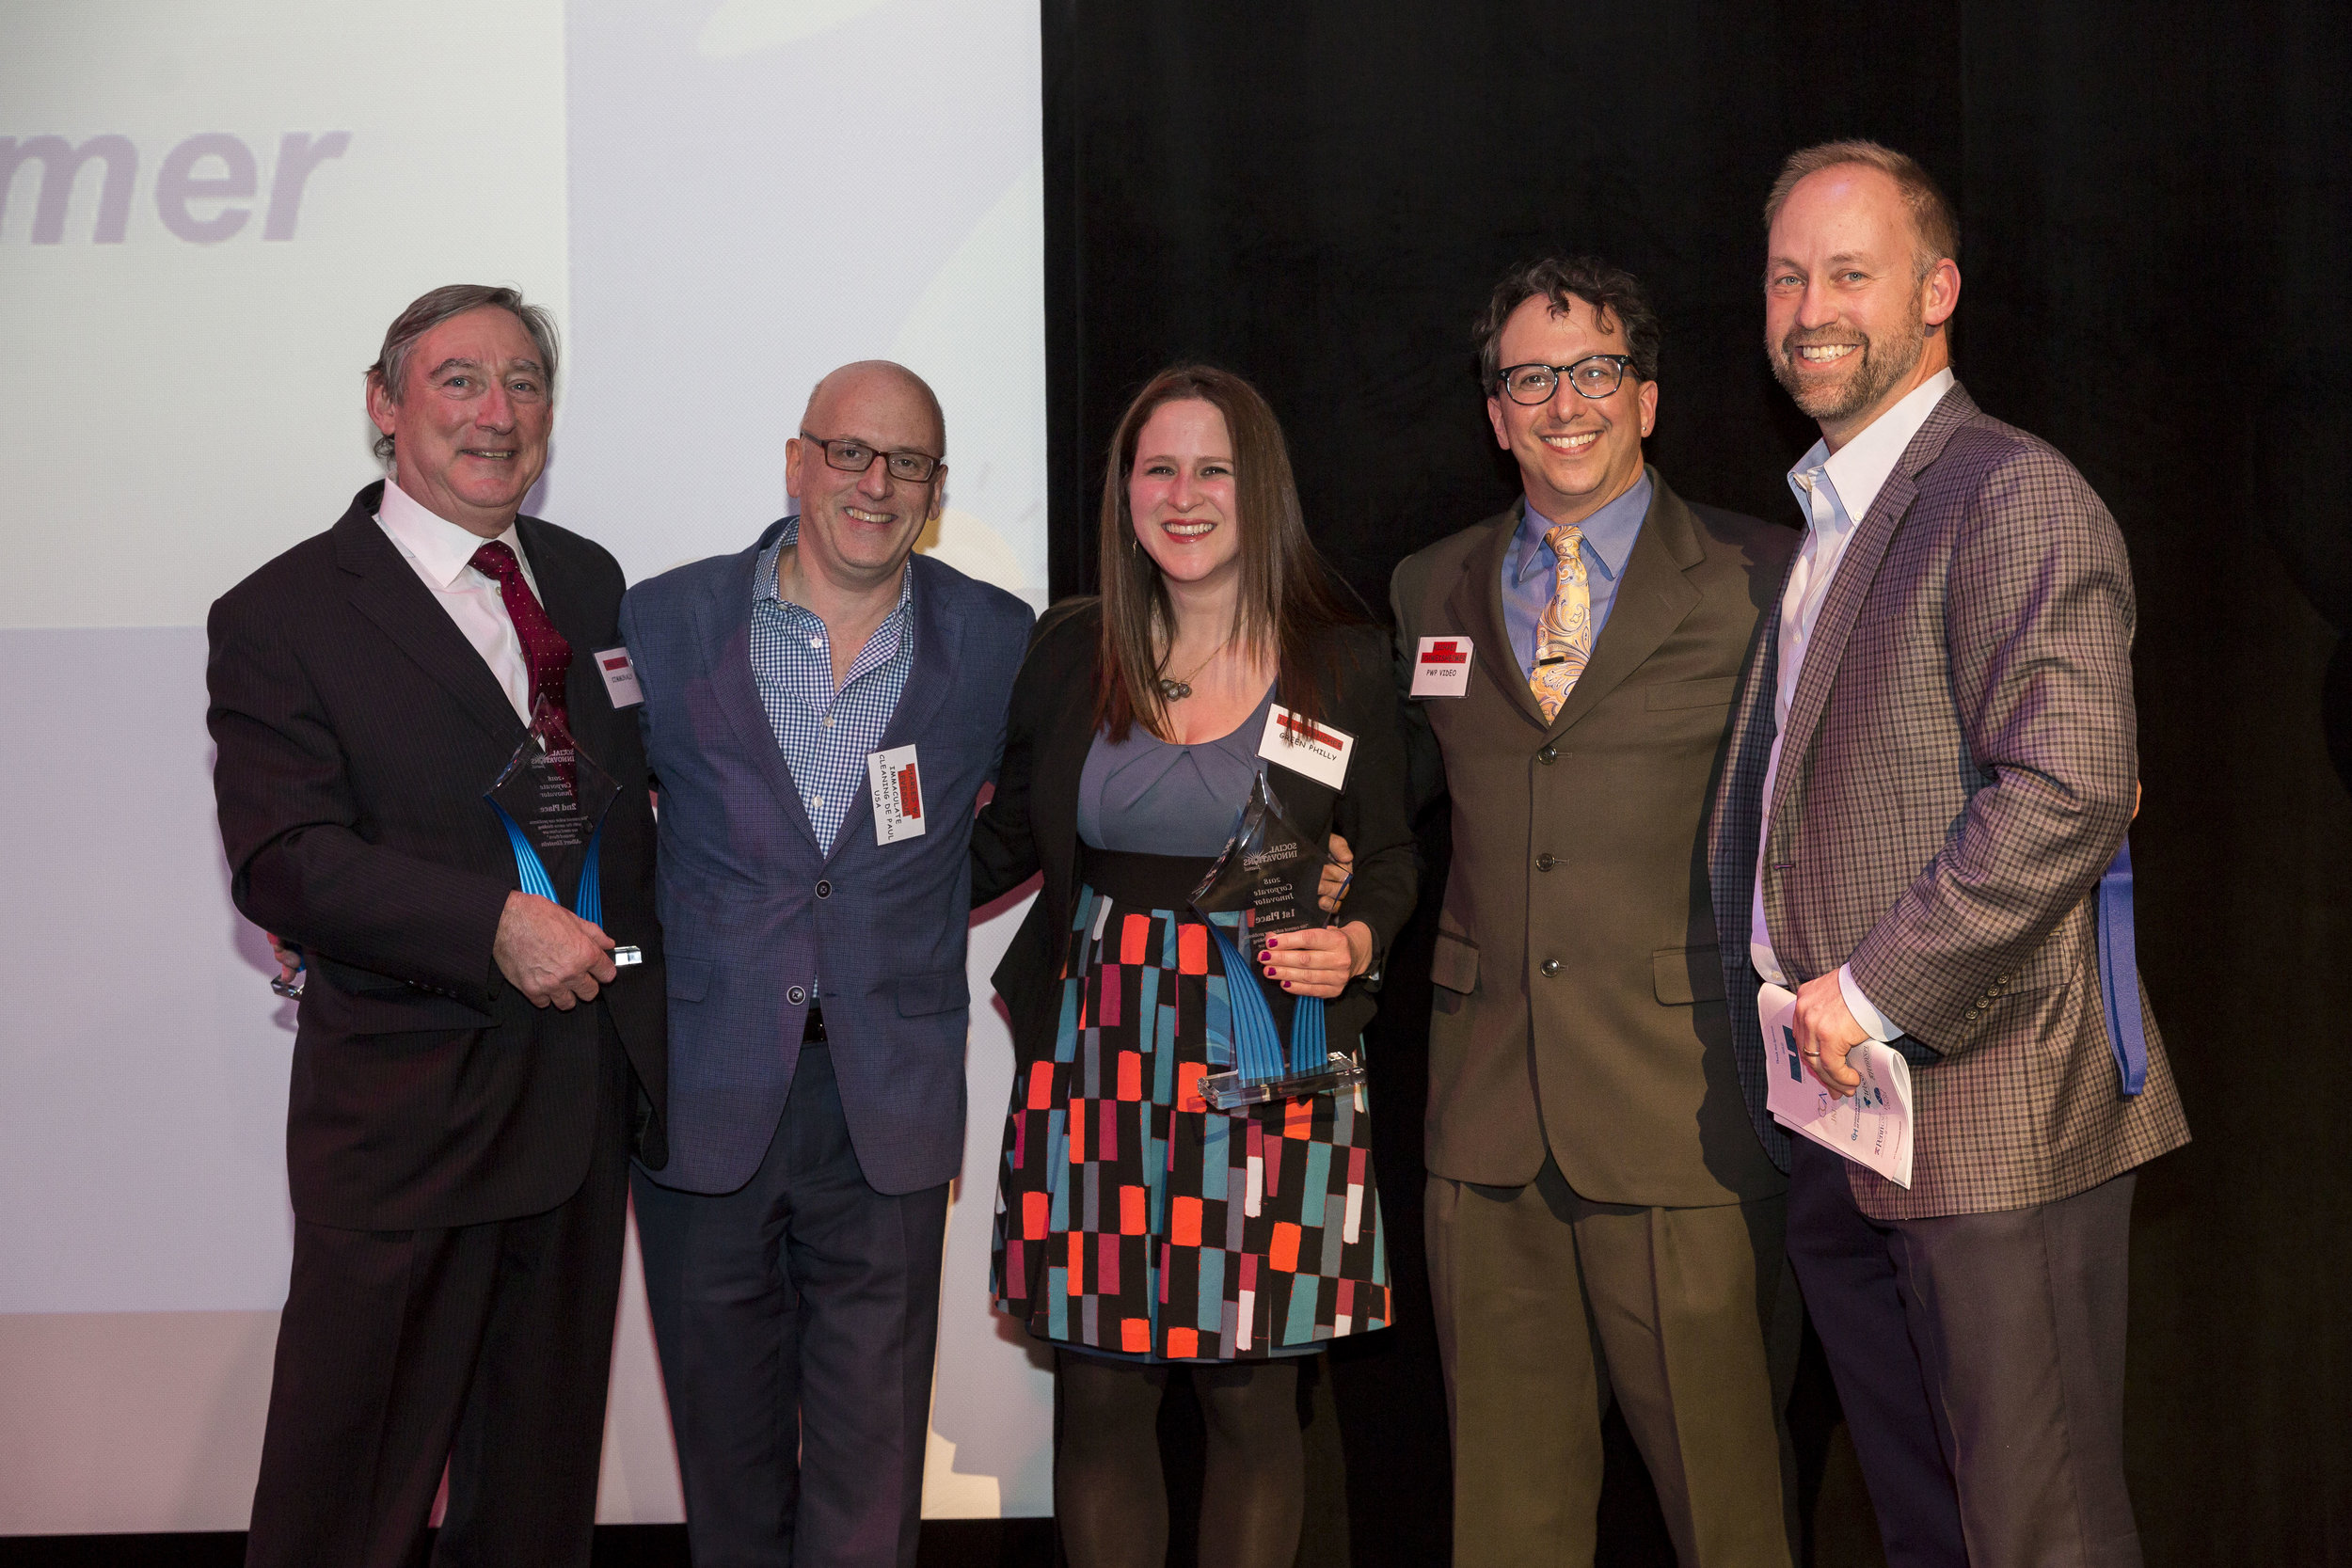 - CORPORATE1st: Julie Hancher, Green Philly2nd: Chris Jacobs, Communally3rd:  Charles W. Levesque, Immaculate Cleaning Services: De Paul USA4th & 5th:  Mindi S. Knebel, Kaizen Health & Michael Schweisheimer, PWP Video